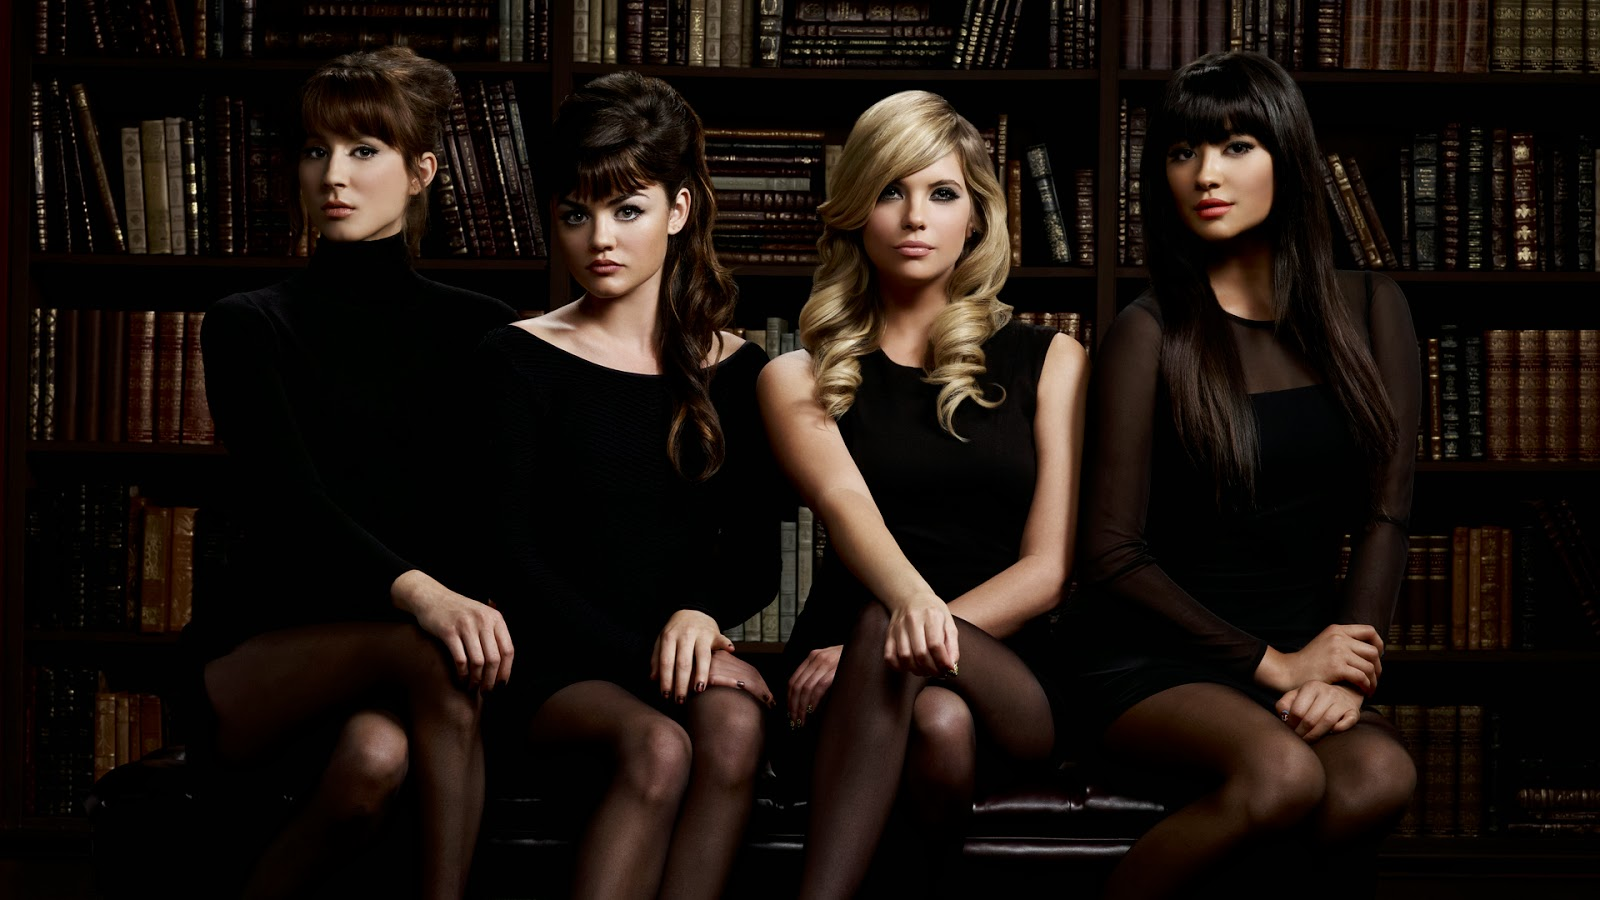 71708-pretty-little-liars-pretty-little-liars.jpg